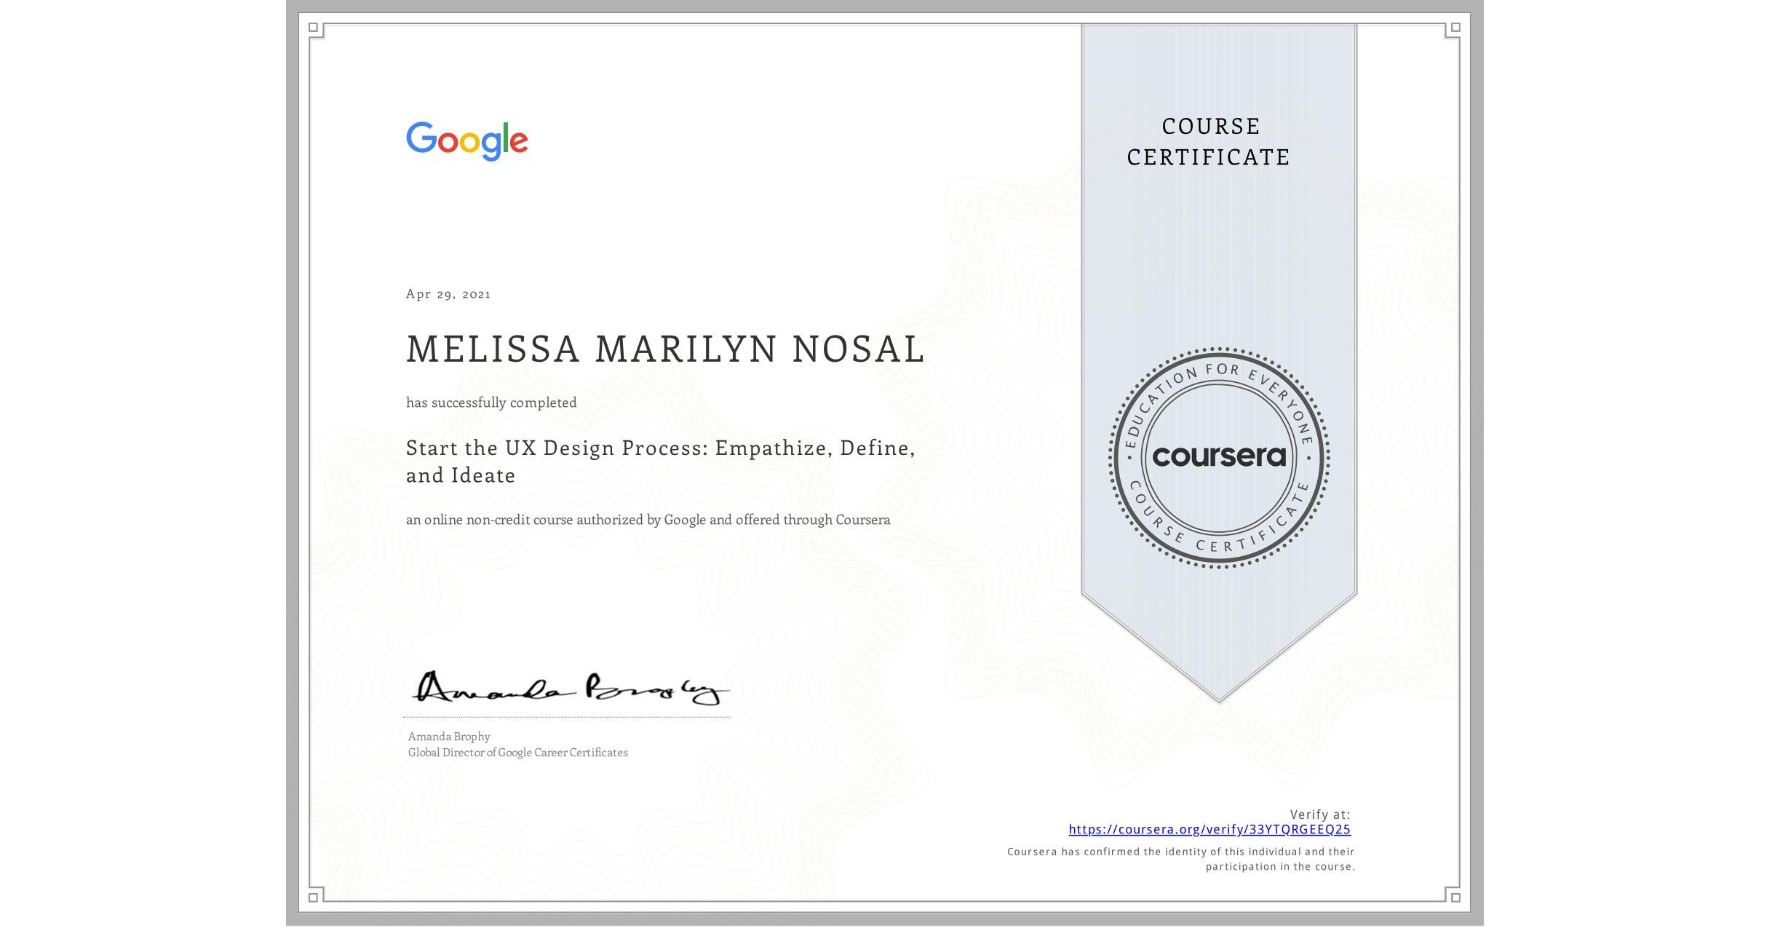 View certificate for Melissa Nosal, Start the UX Design Process: Empathize, Define, and Ideate, an online non-credit course authorized by Google and offered through Coursera